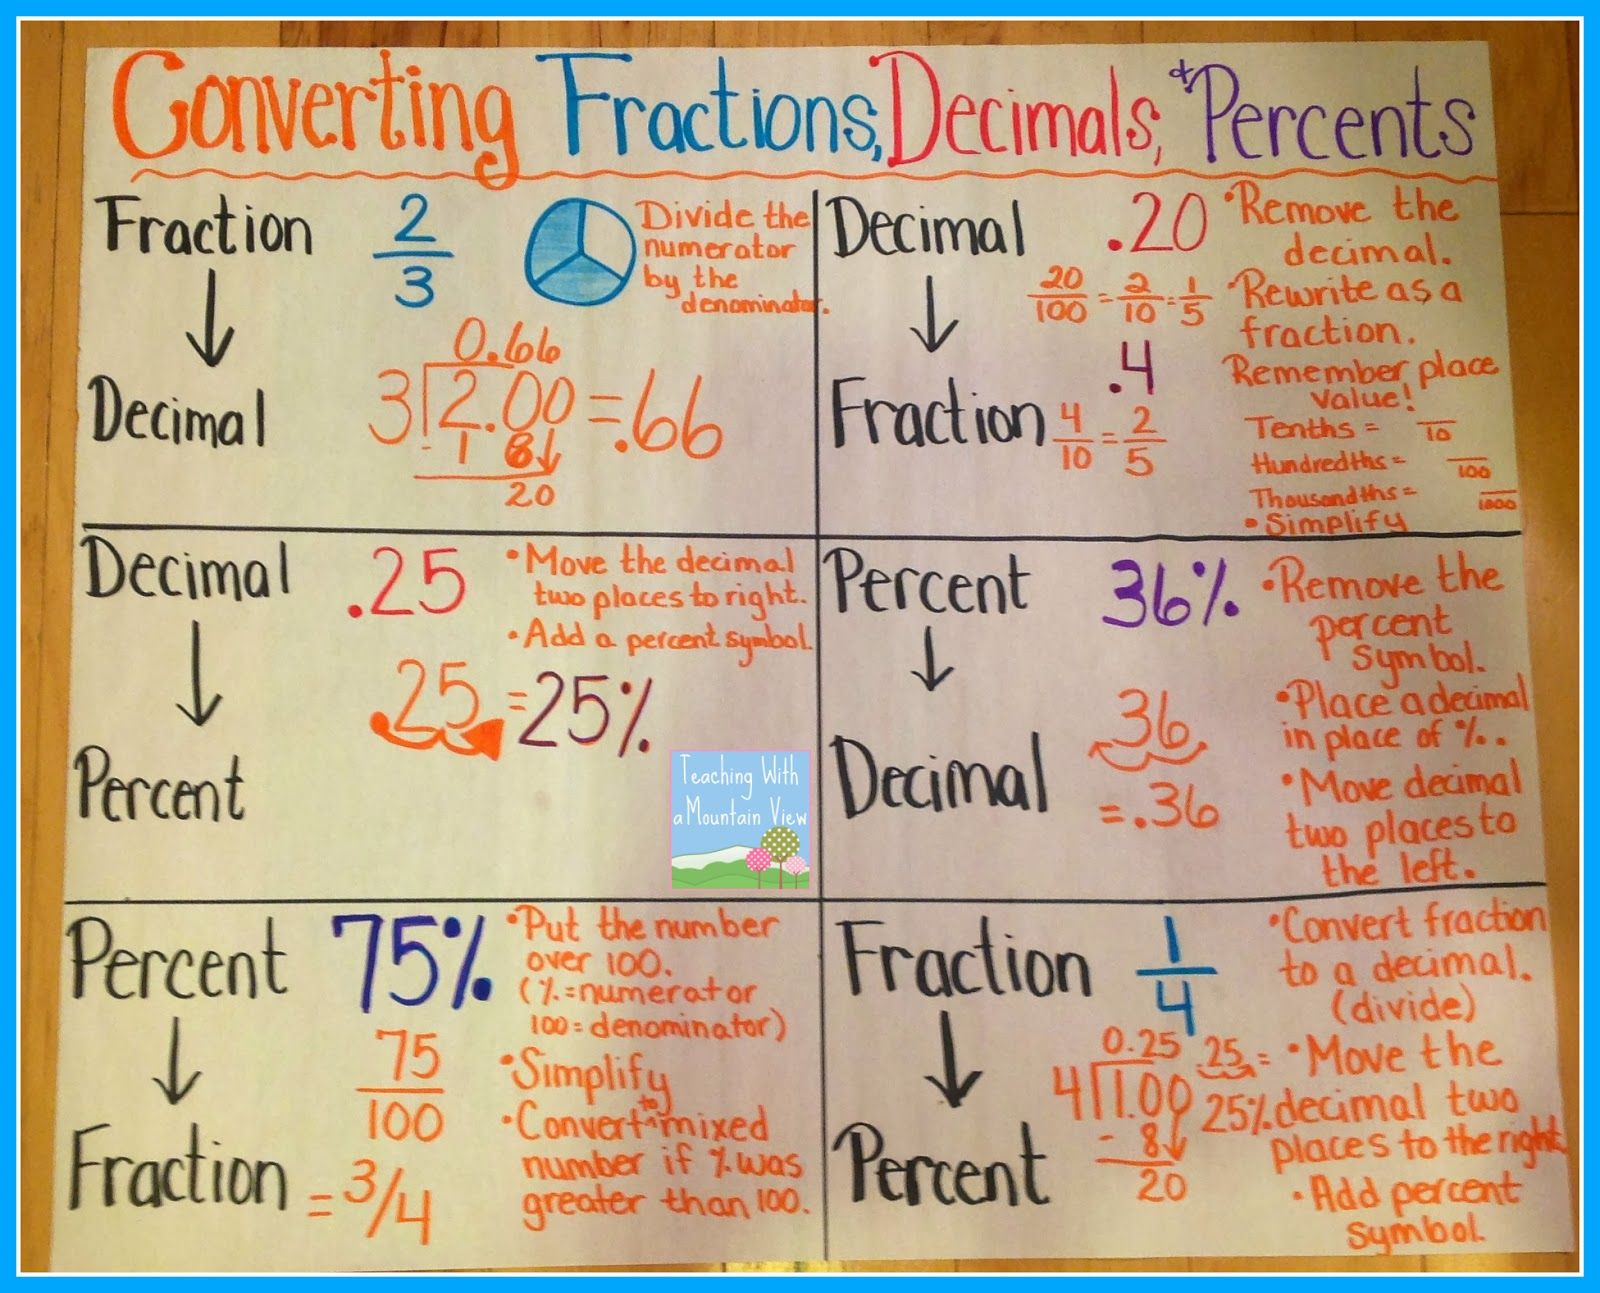 Fractions Decimals Percents Anchor Chart